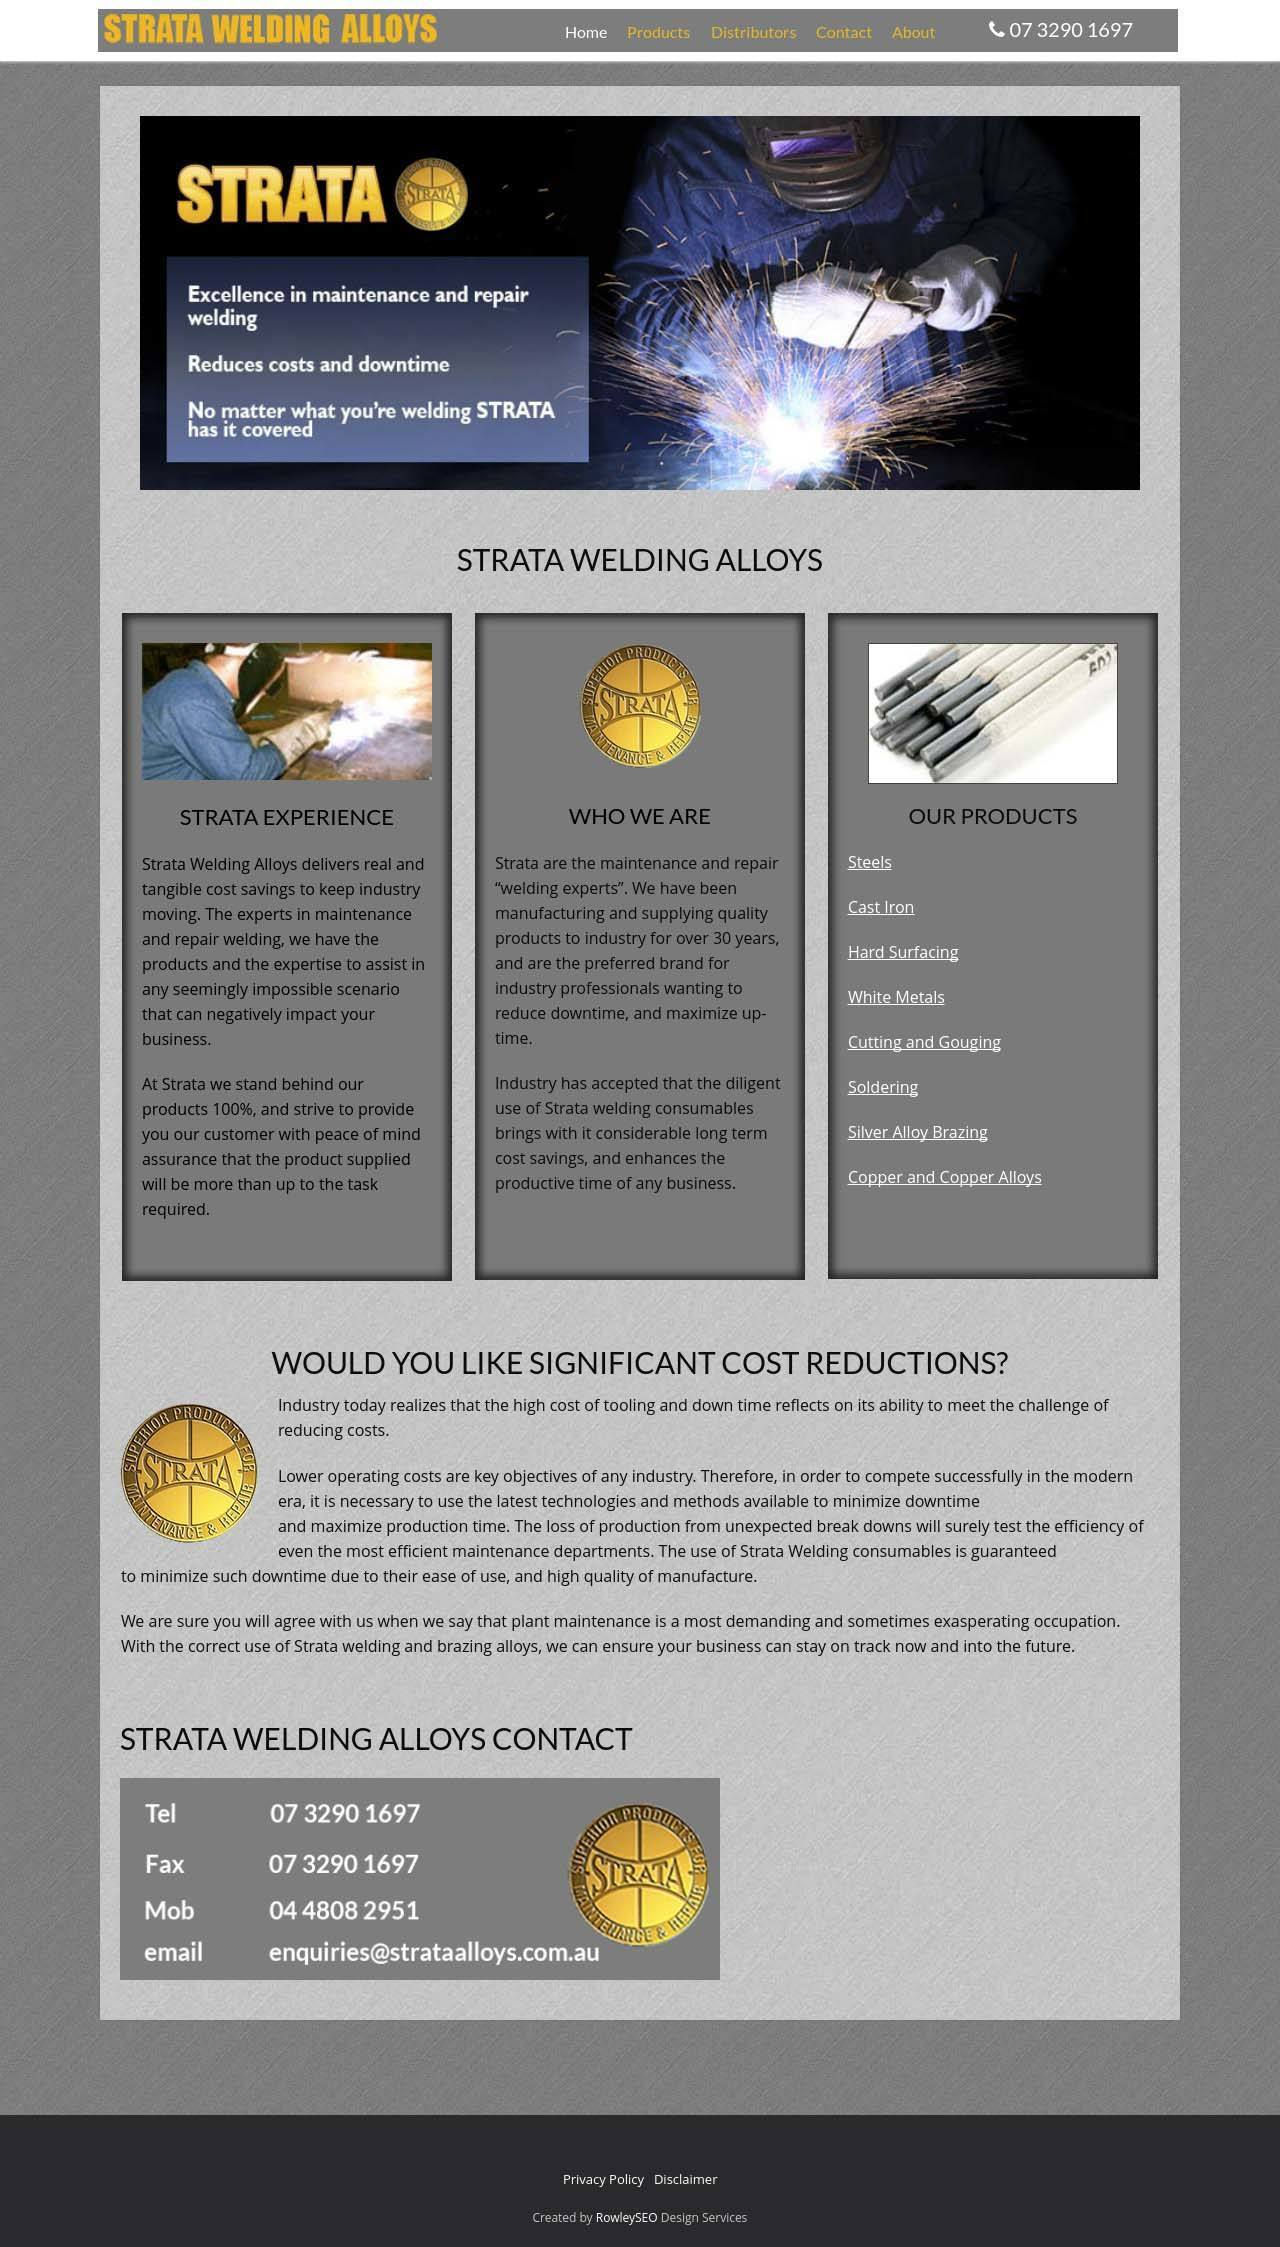 strata welding website optimized